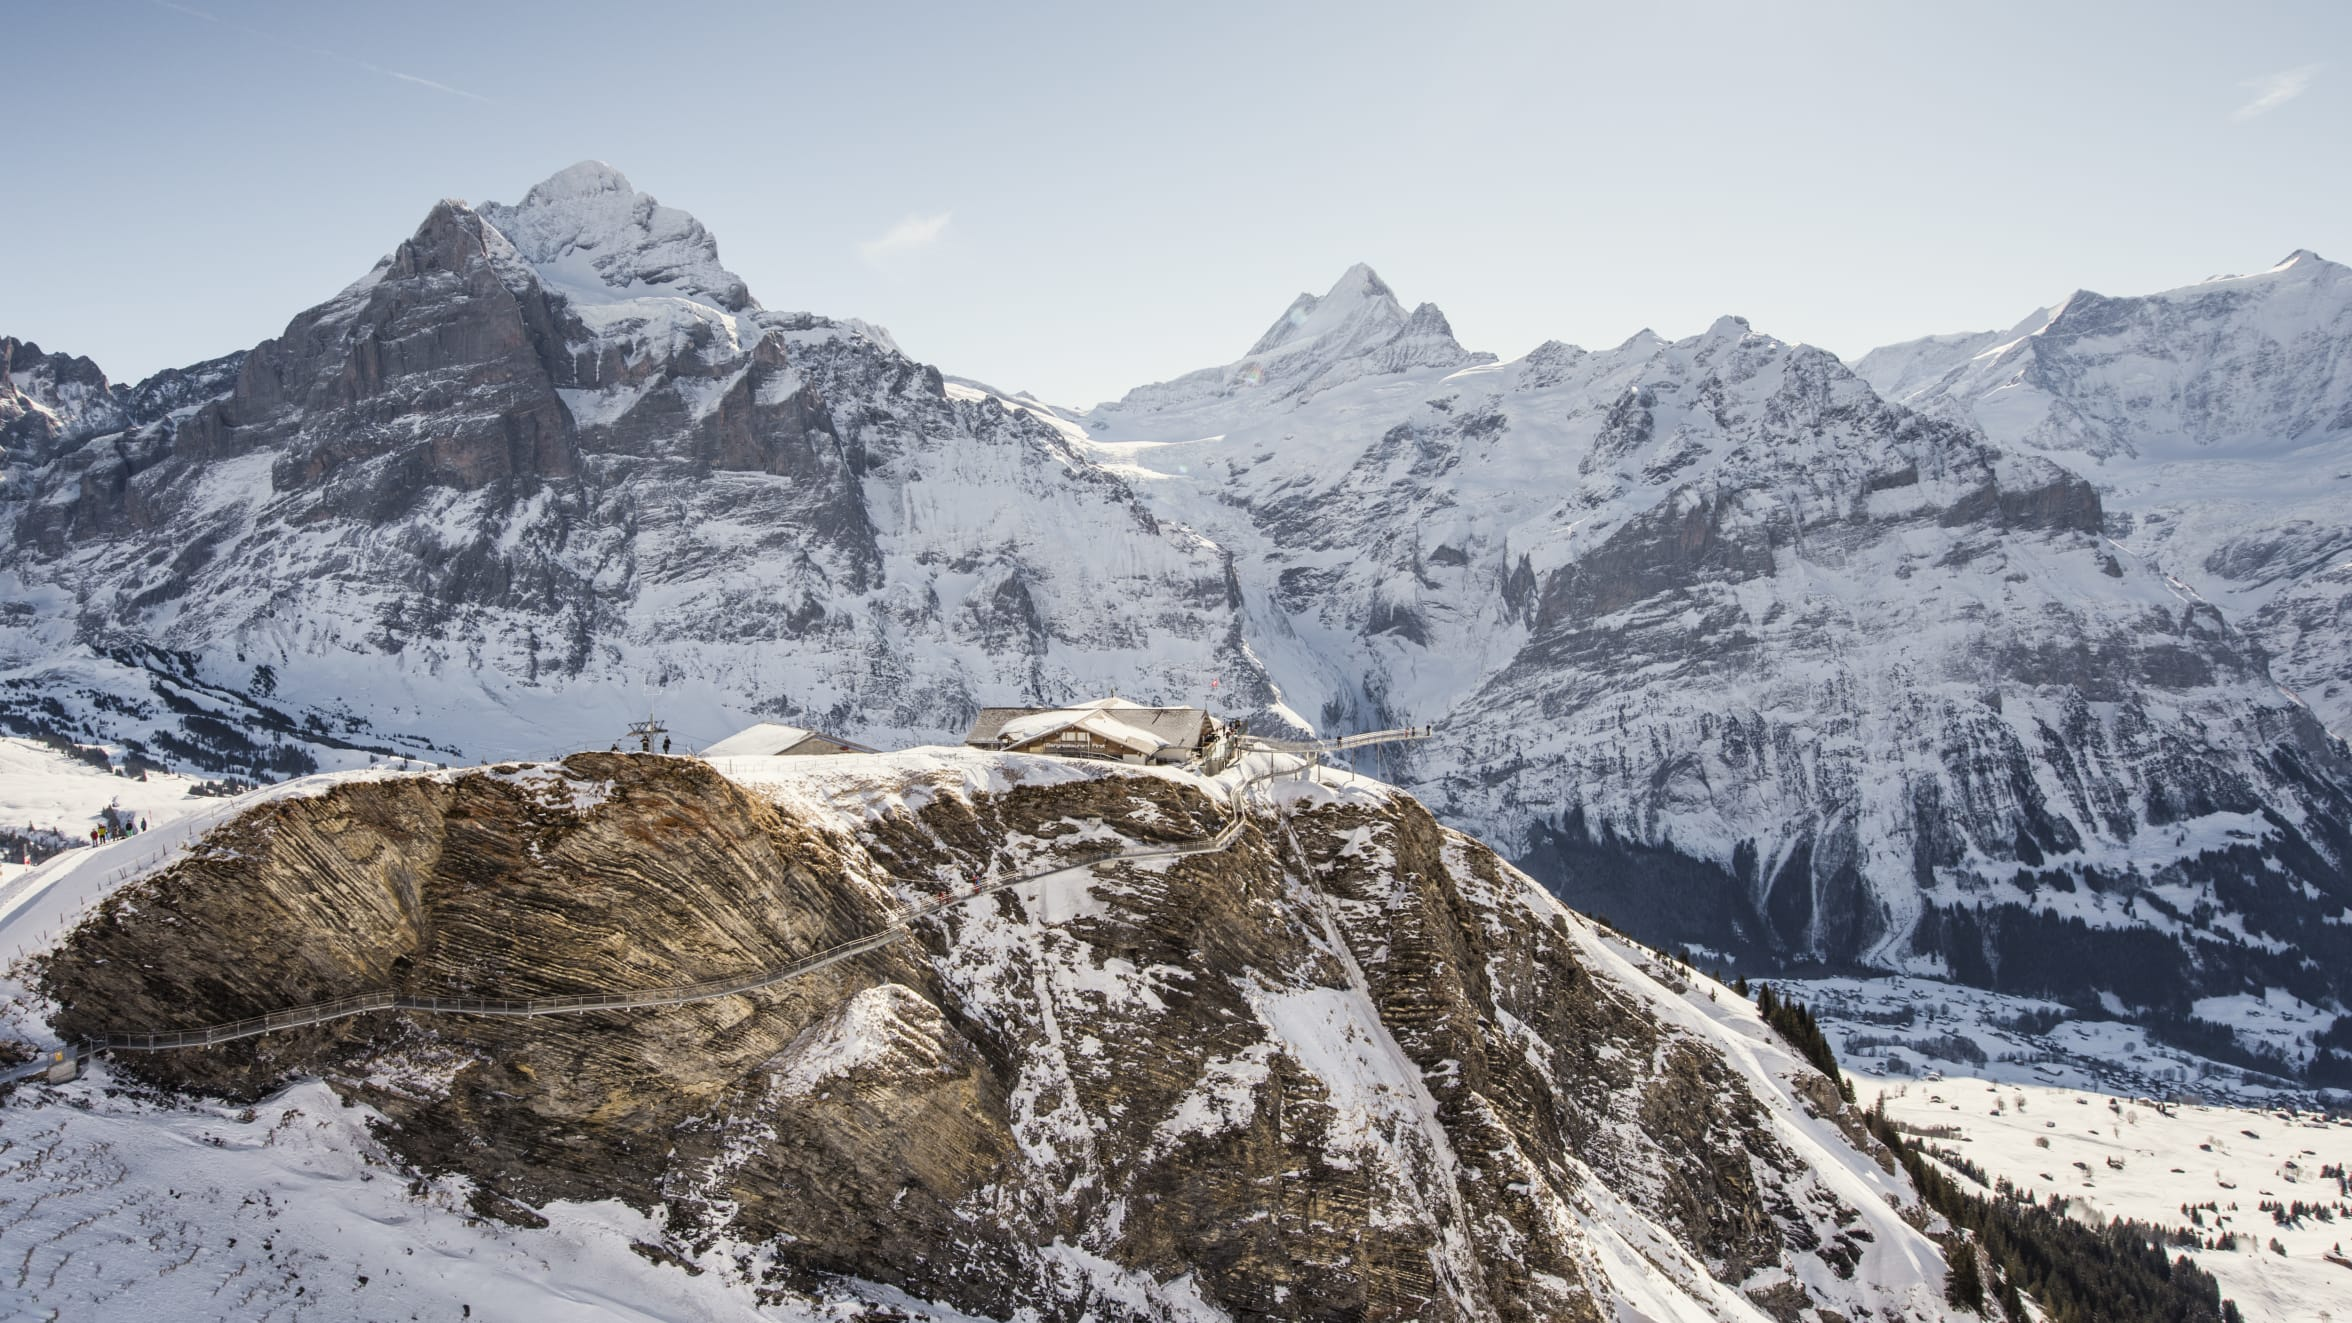 First Cliff Walk Winter Wetterhorn Schreckhorn Panorama Schnee Grindelwald